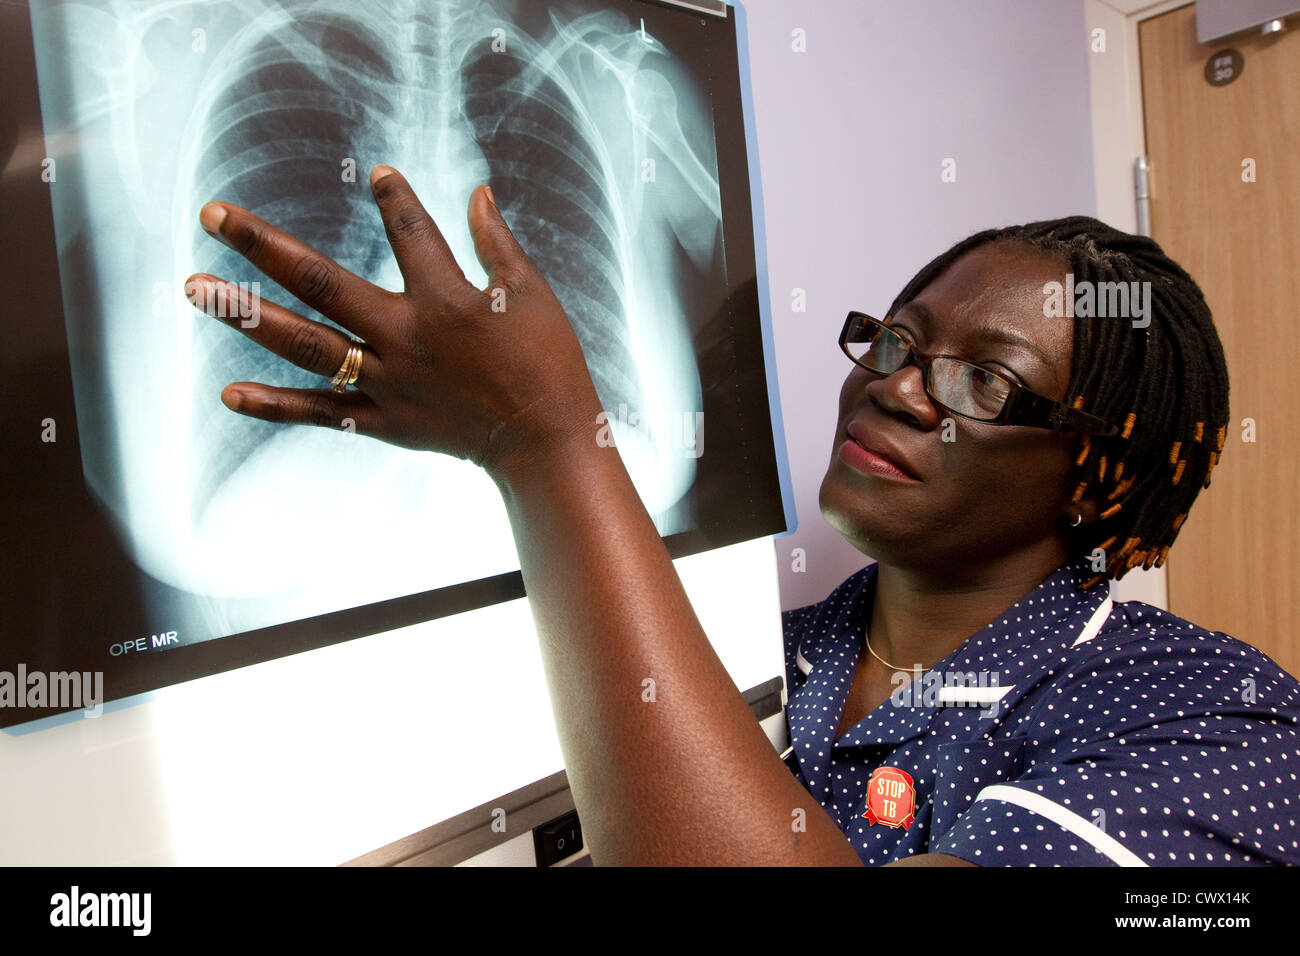 Sister looking at a chest  Xray - Stock Image